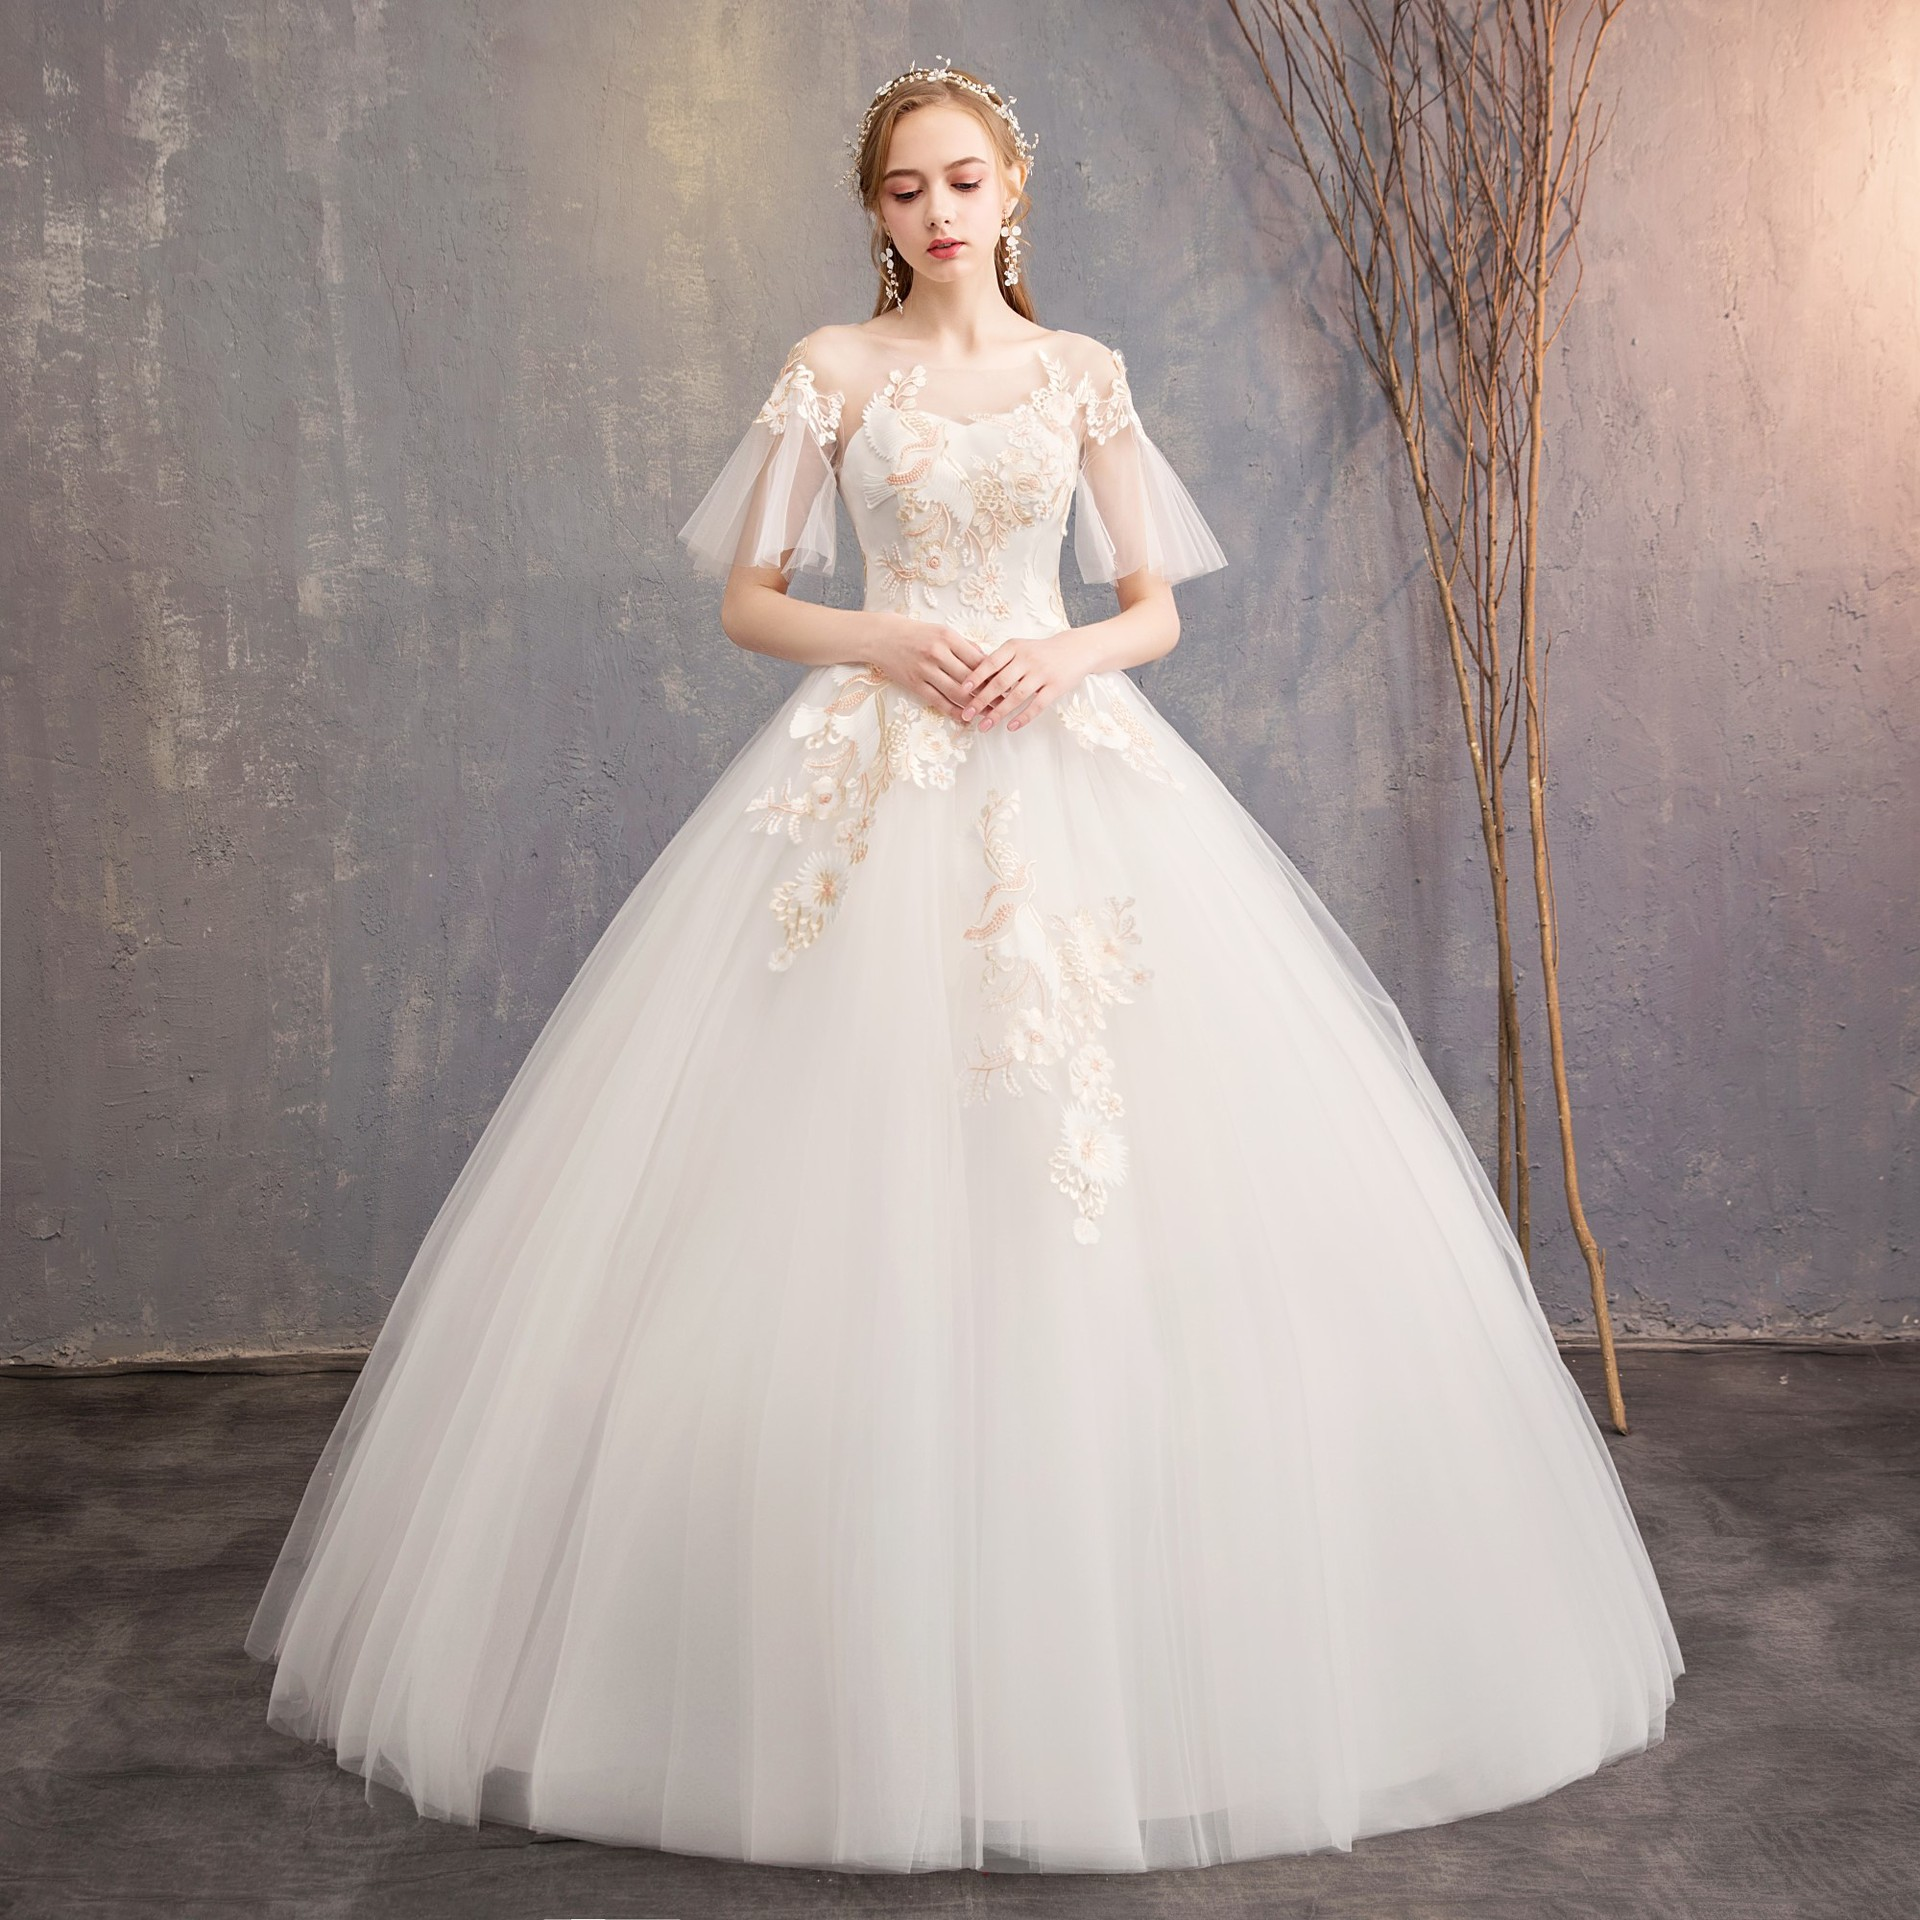 New Arrival Do Dower Sleeveless Simle Lace Wedding Dress 2019 Plus Size Lace Up Princess Vintage Wedding Dress Champagne Lace